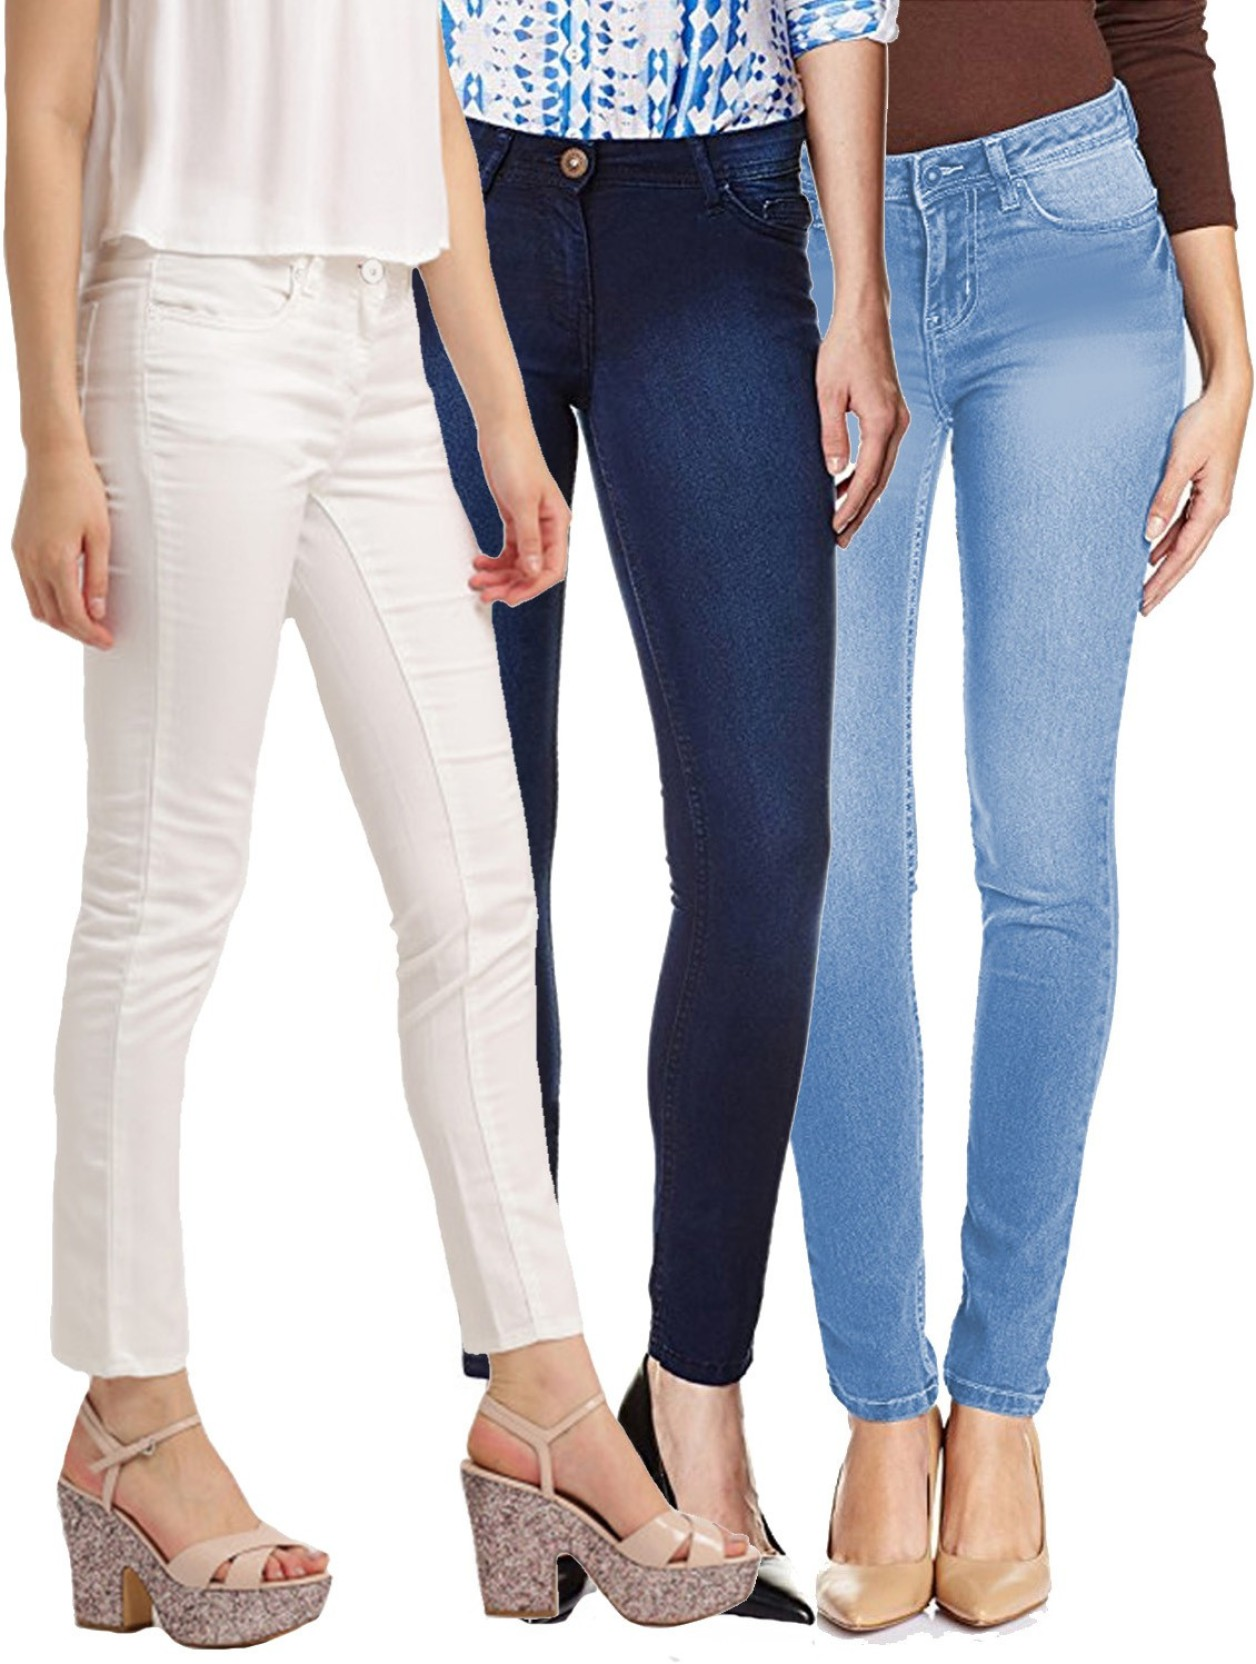 Fuego Regular Women White, Blue, Light Blue Jeans - Buy Fuego